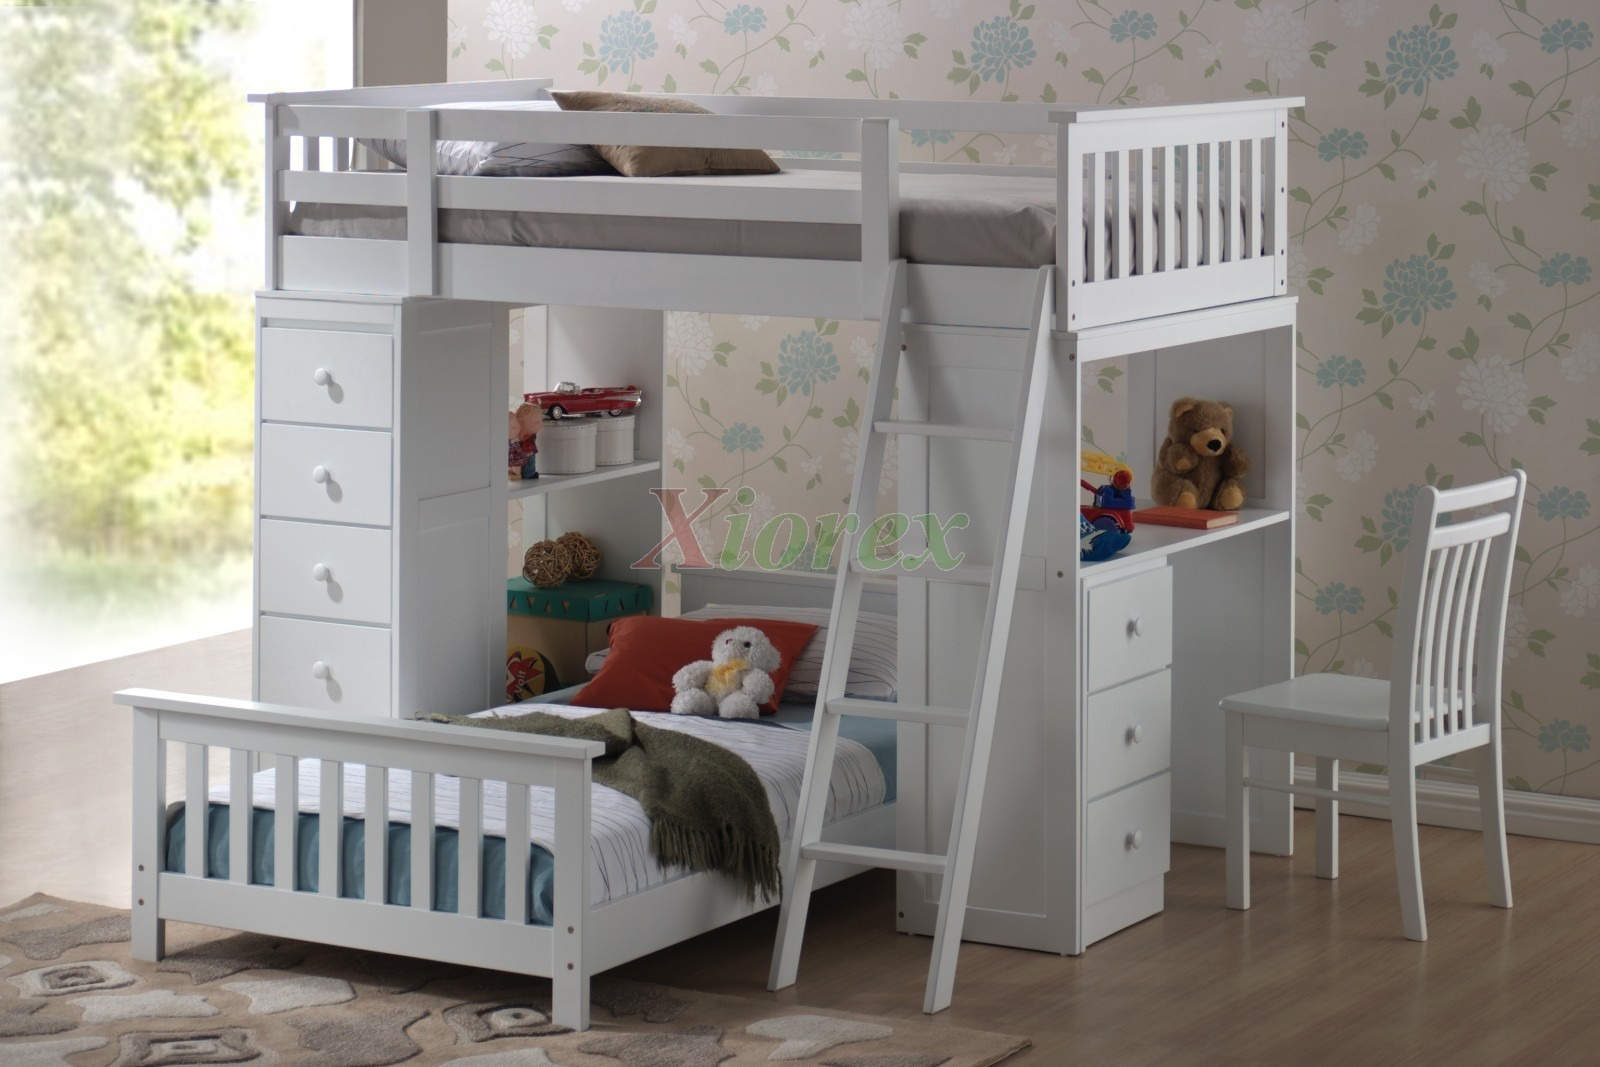 huckleberry loft bunk beds for kids with storage desk xiorex. Black Bedroom Furniture Sets. Home Design Ideas